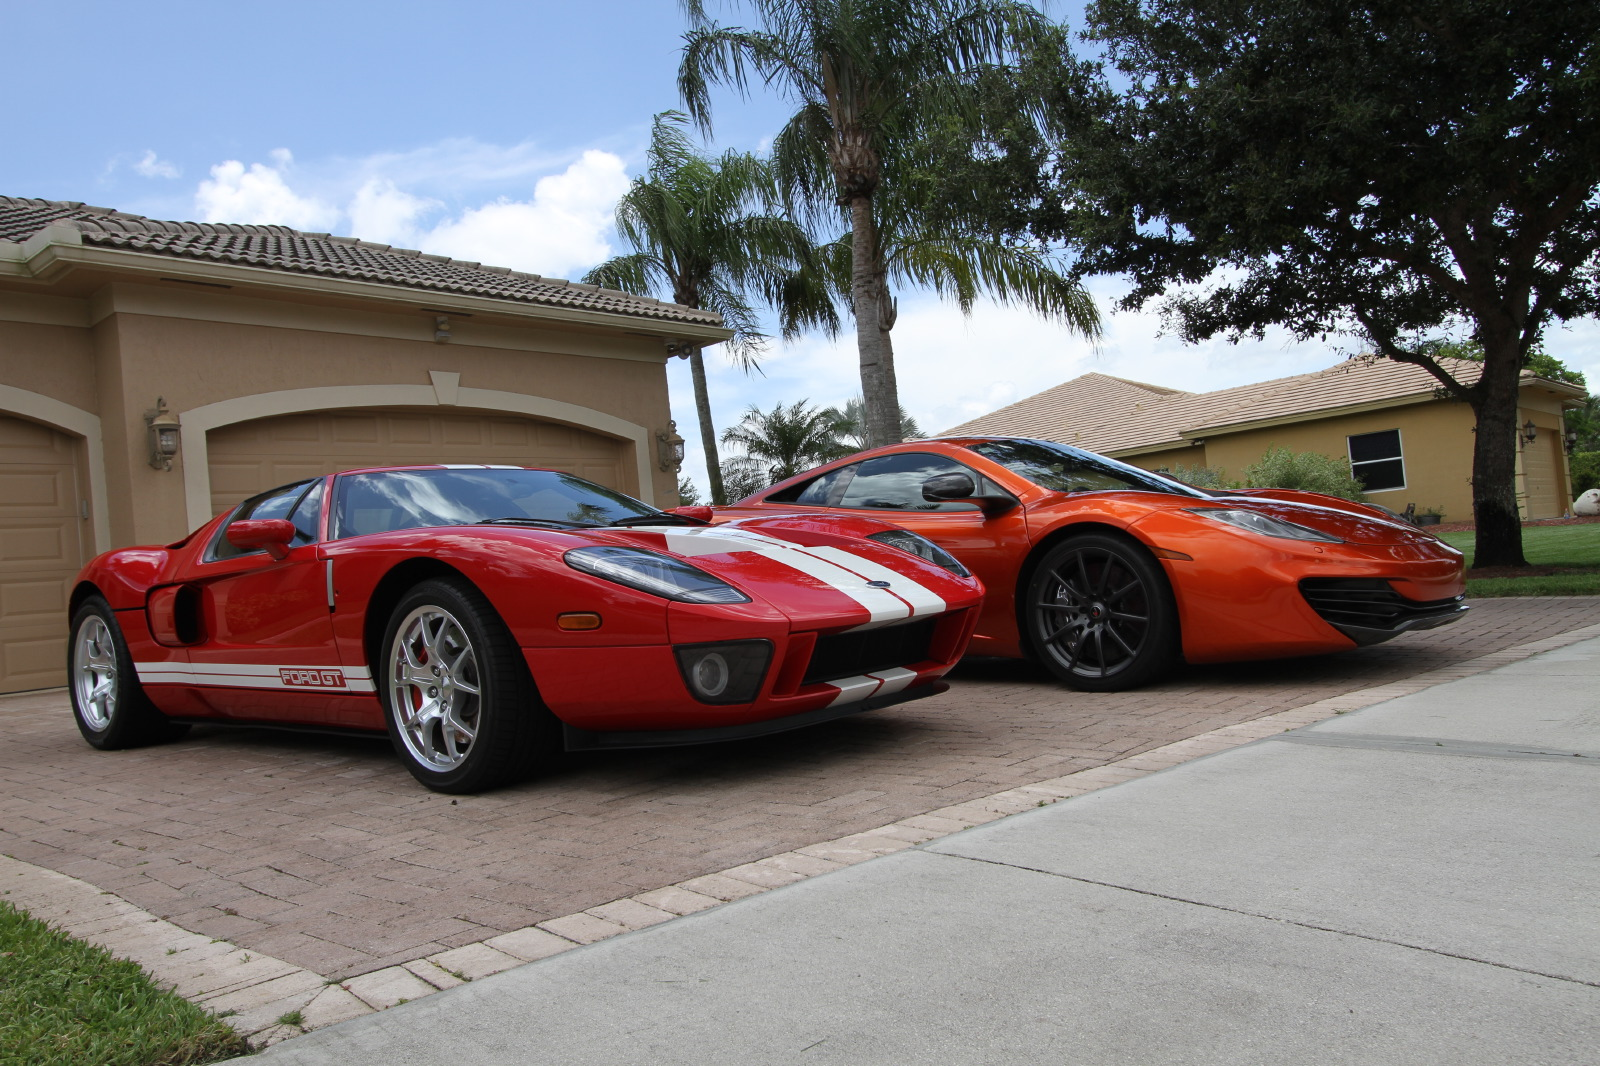 mclaren-mp4-12c-volcano-orange-vs-ford-gt-red-white-006